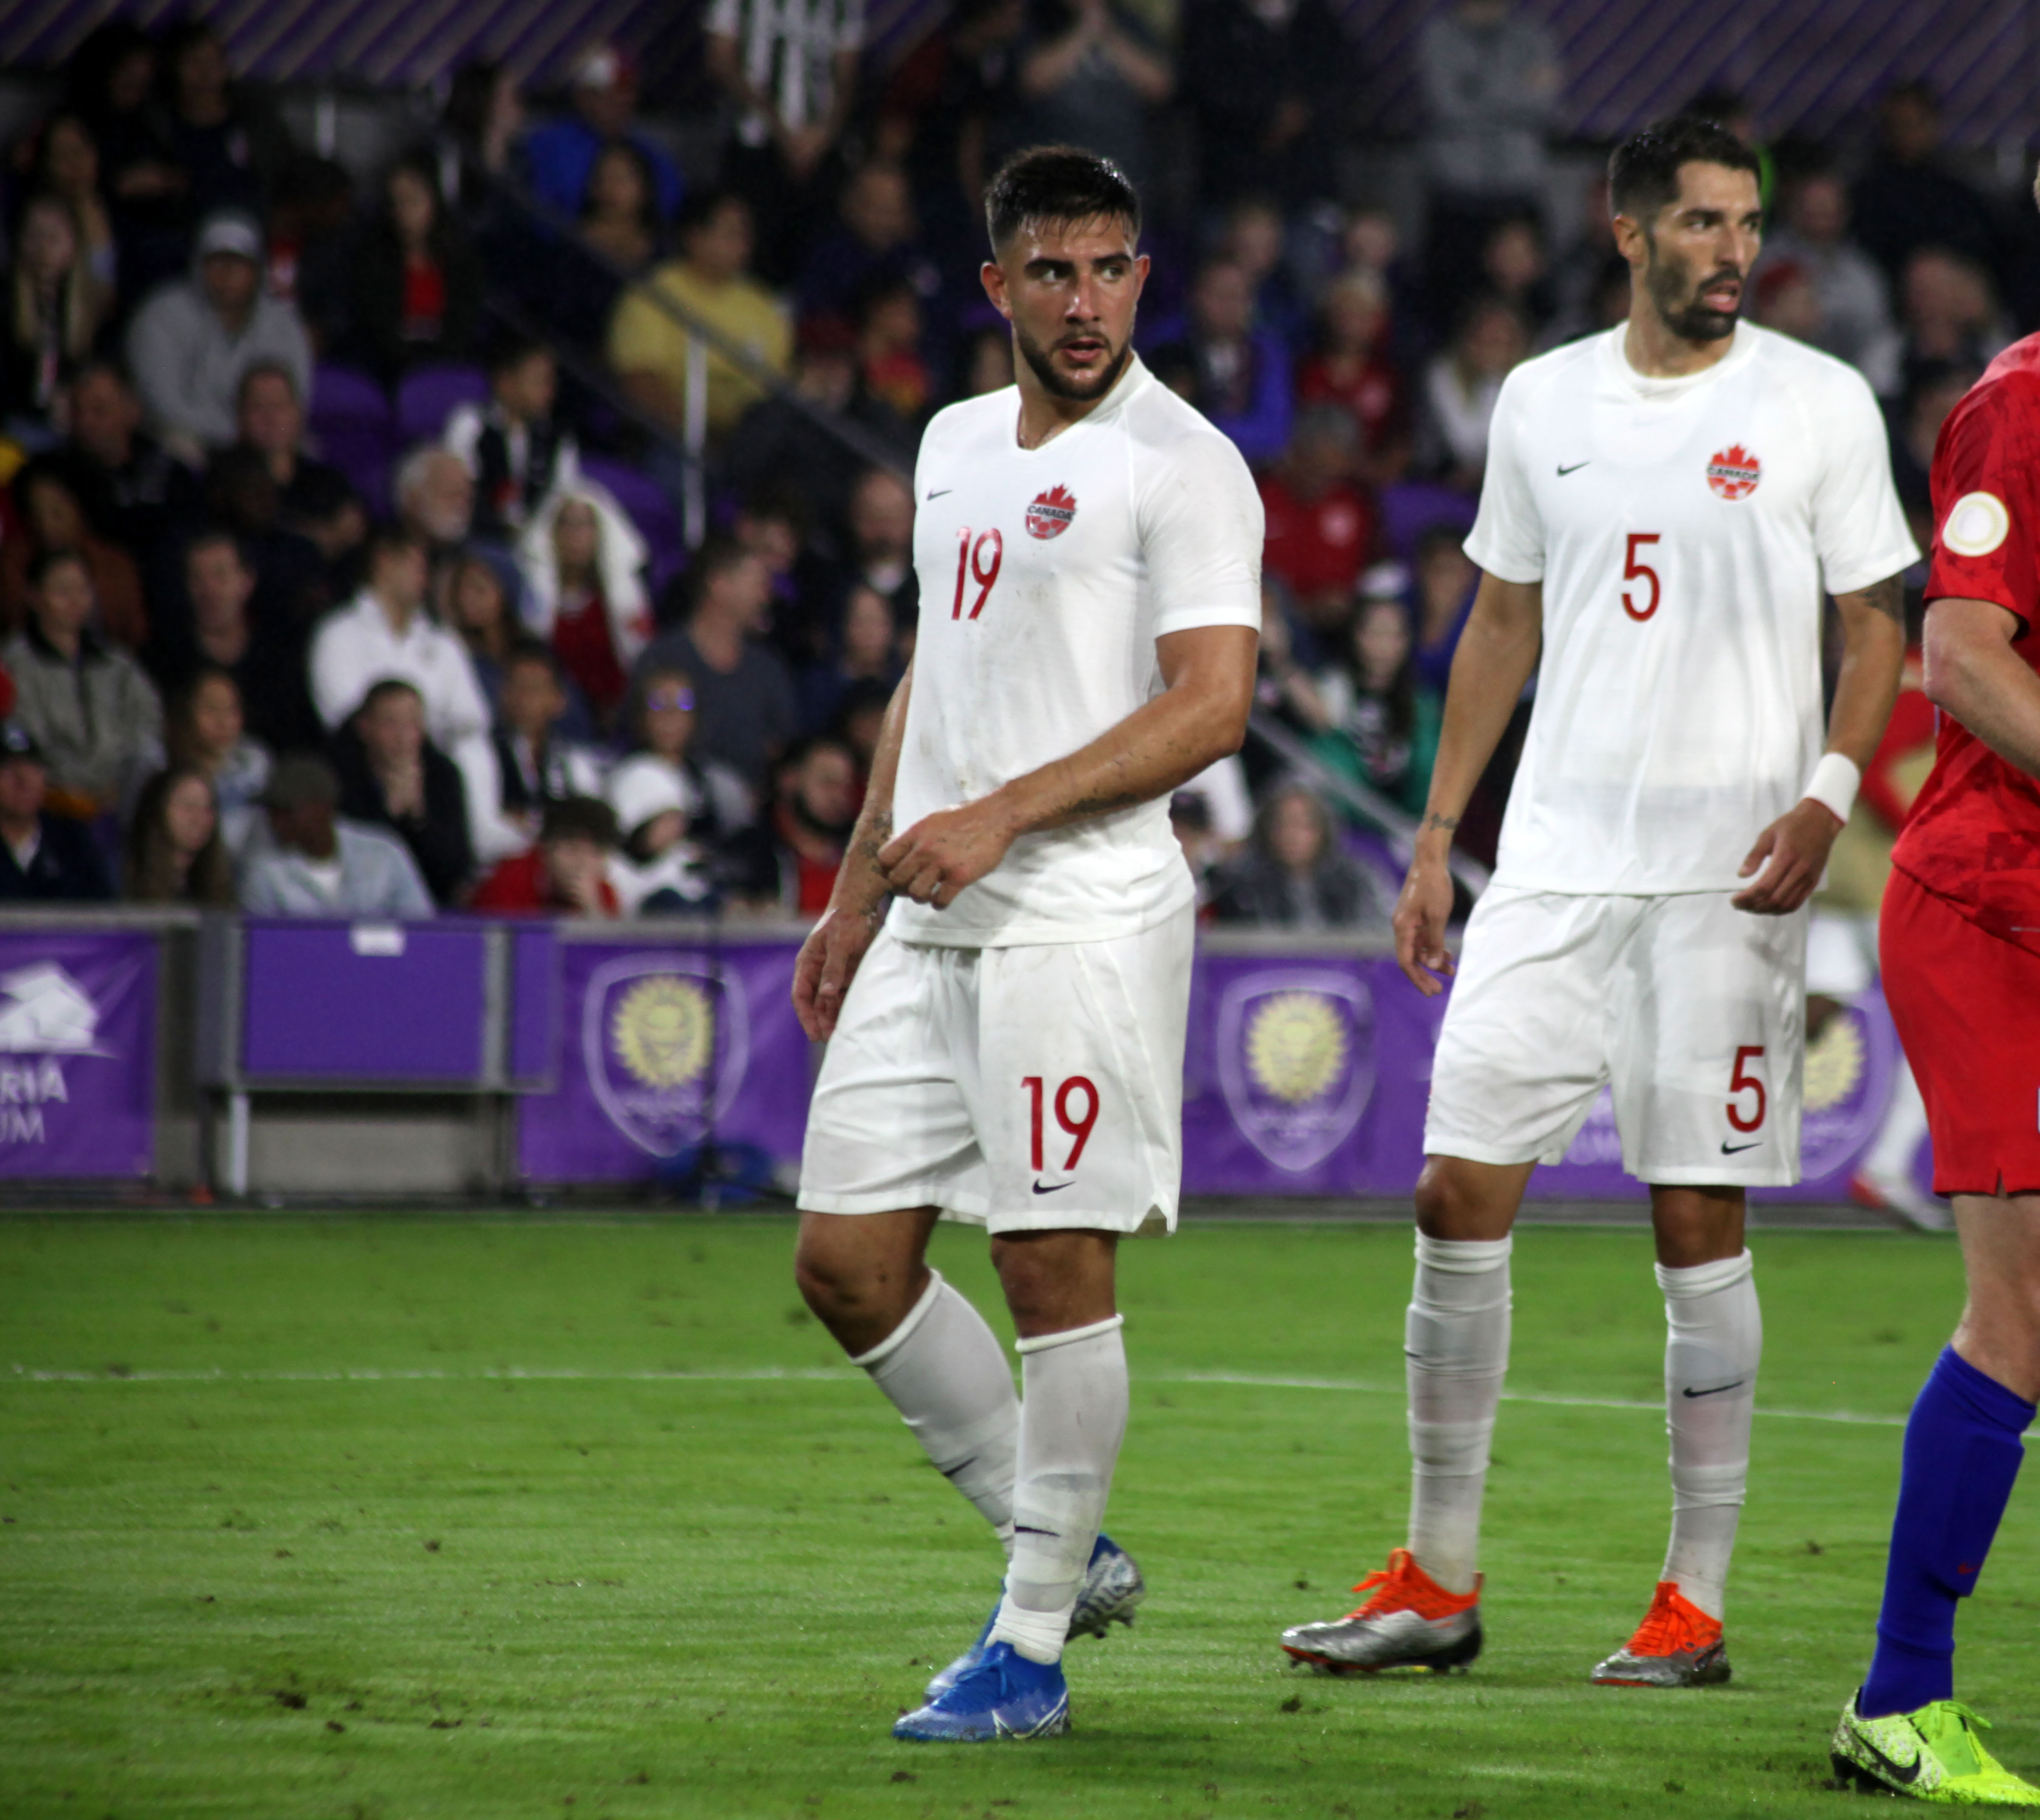 20191115_CANMNT_07